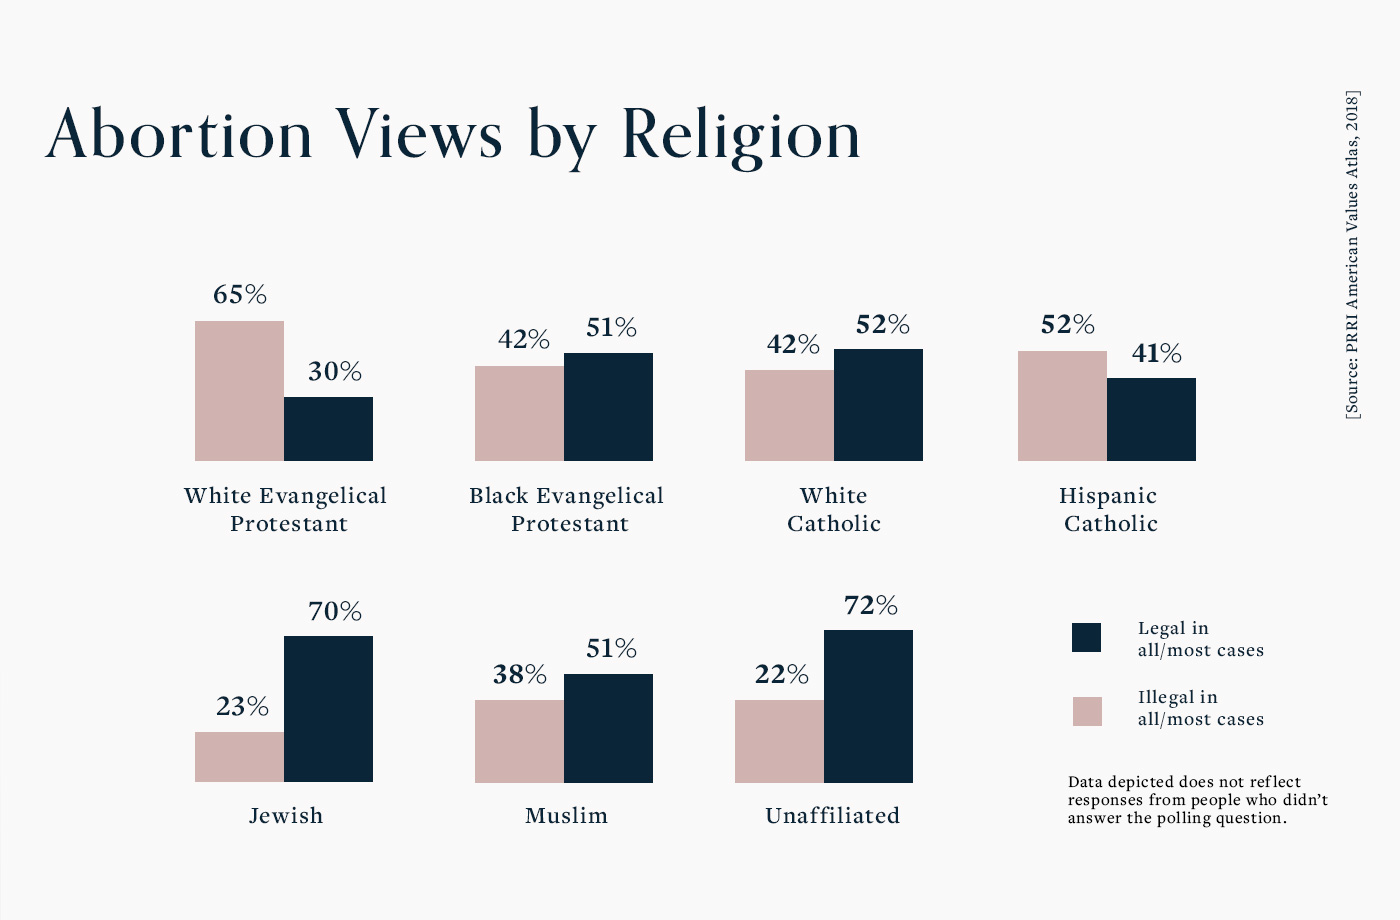 abortion views by religious affiliation, including evangelical christians and catholics